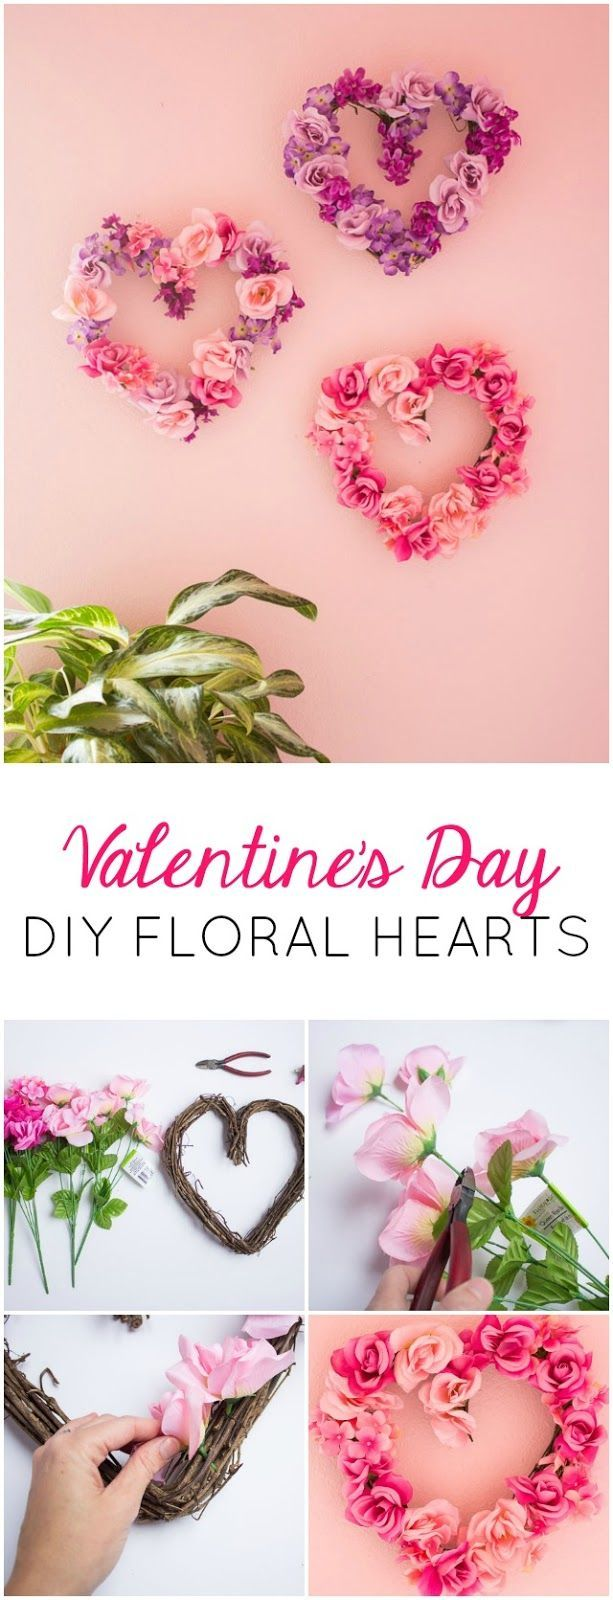 Photo of Valentine's Day Decor: DIY Floral Hearts #Day #Decor #DIY #Floral #Hearts #V